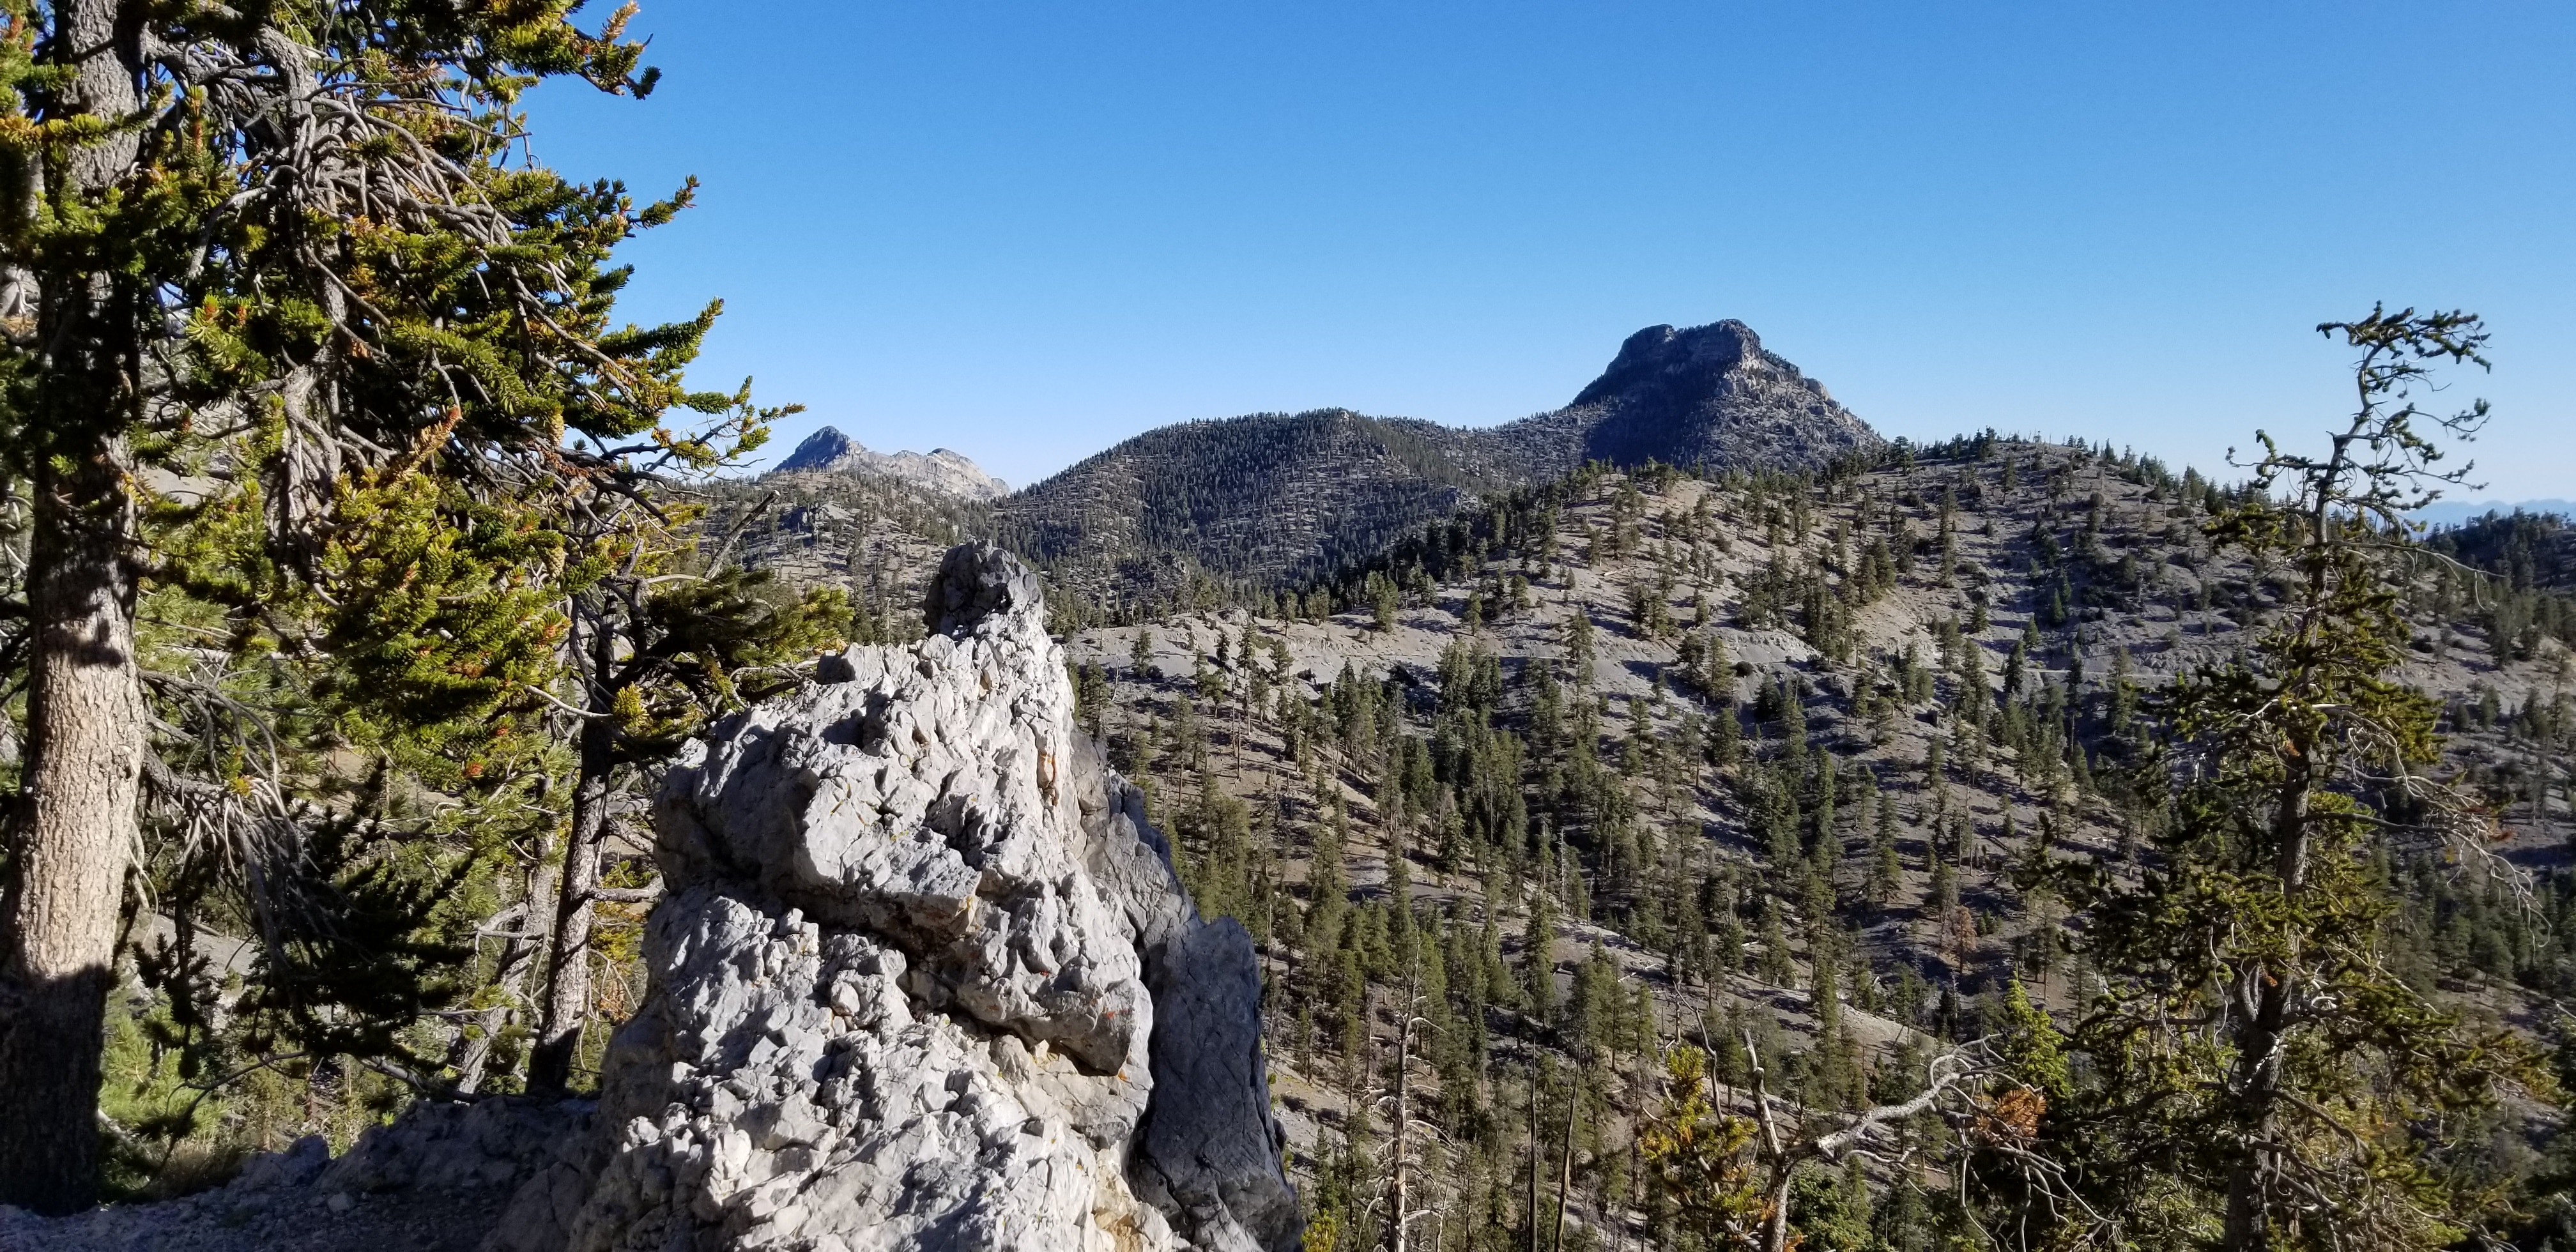 A 9453ft Rocky Peak Viewed from the Bristlecone Pine Trail in Mt. Charleston Wilderness, Nevada